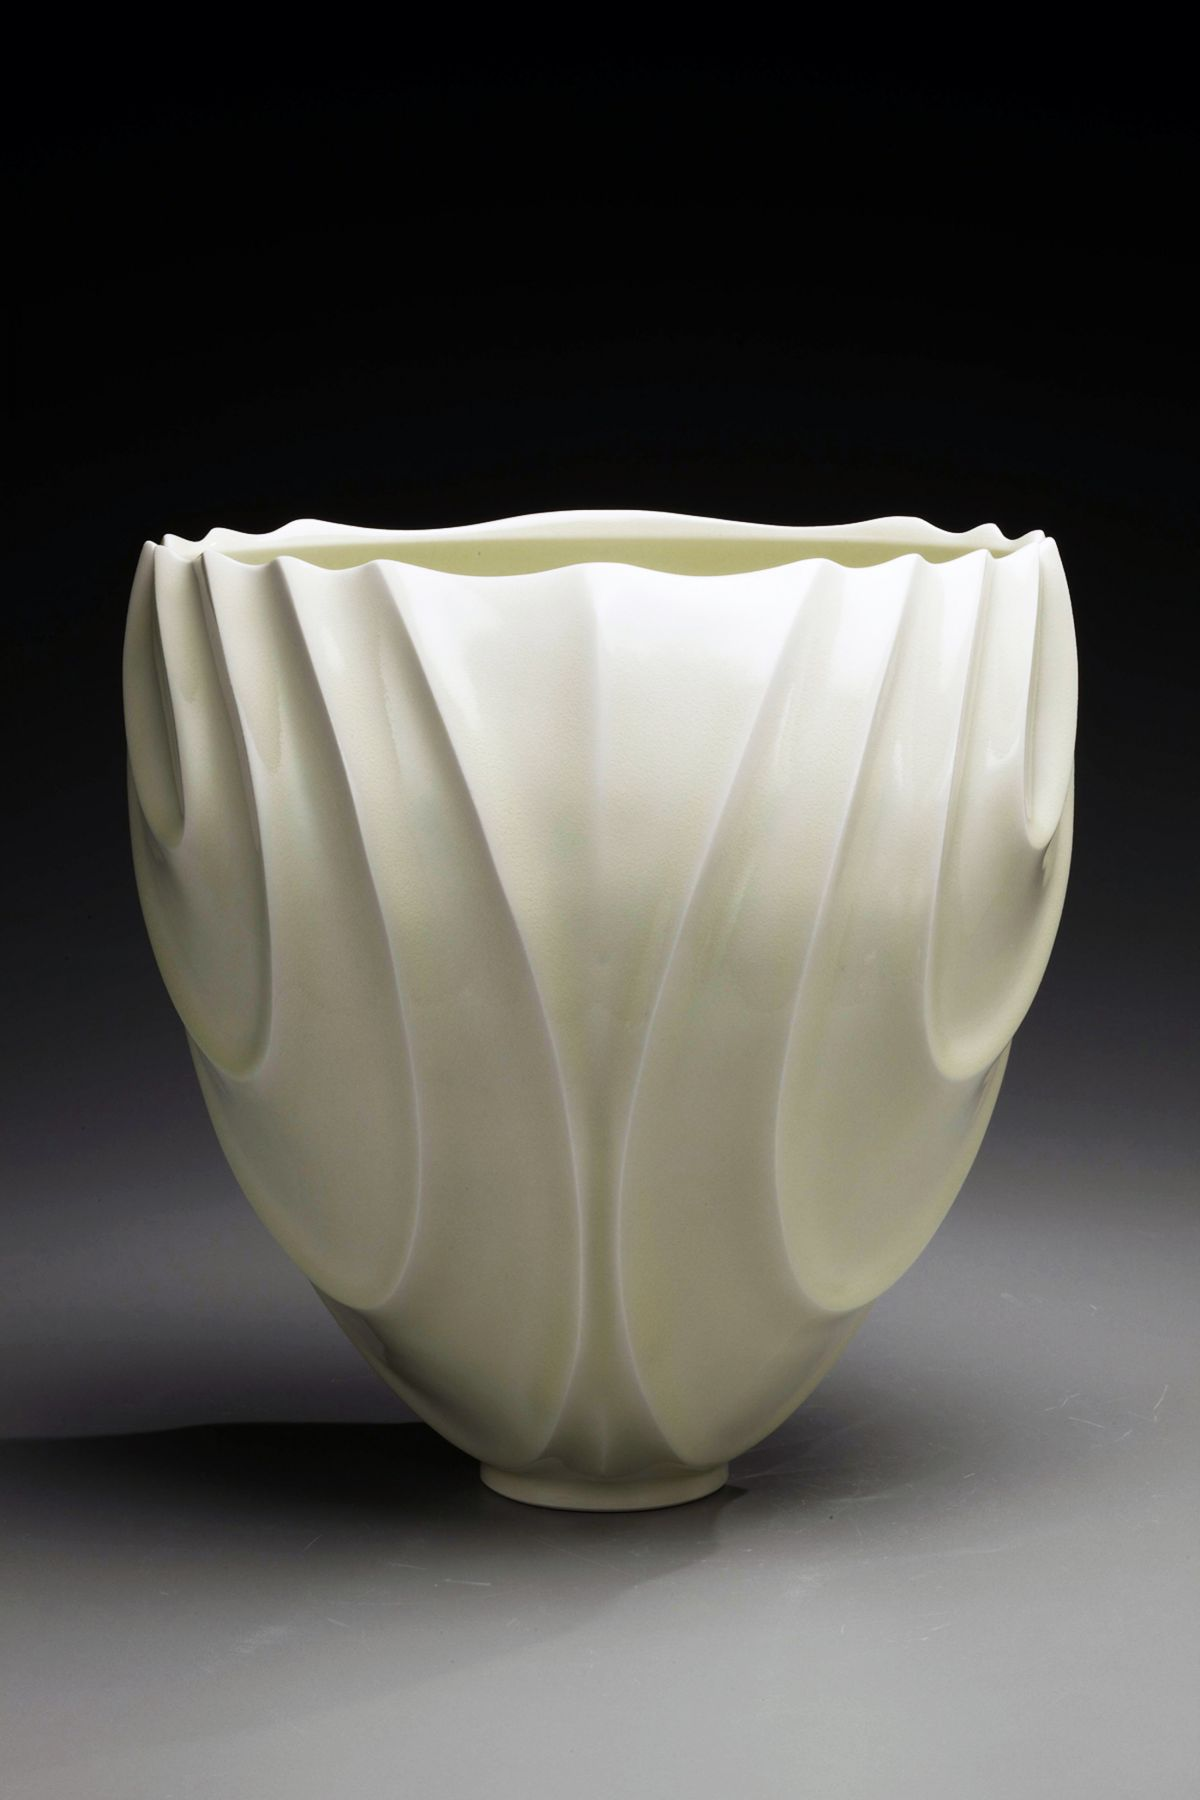 Ono Kotaro, Tall pale yellow celadon-glazed vase, 2009 Glazed porcelain, Japanese contemporary ceramics